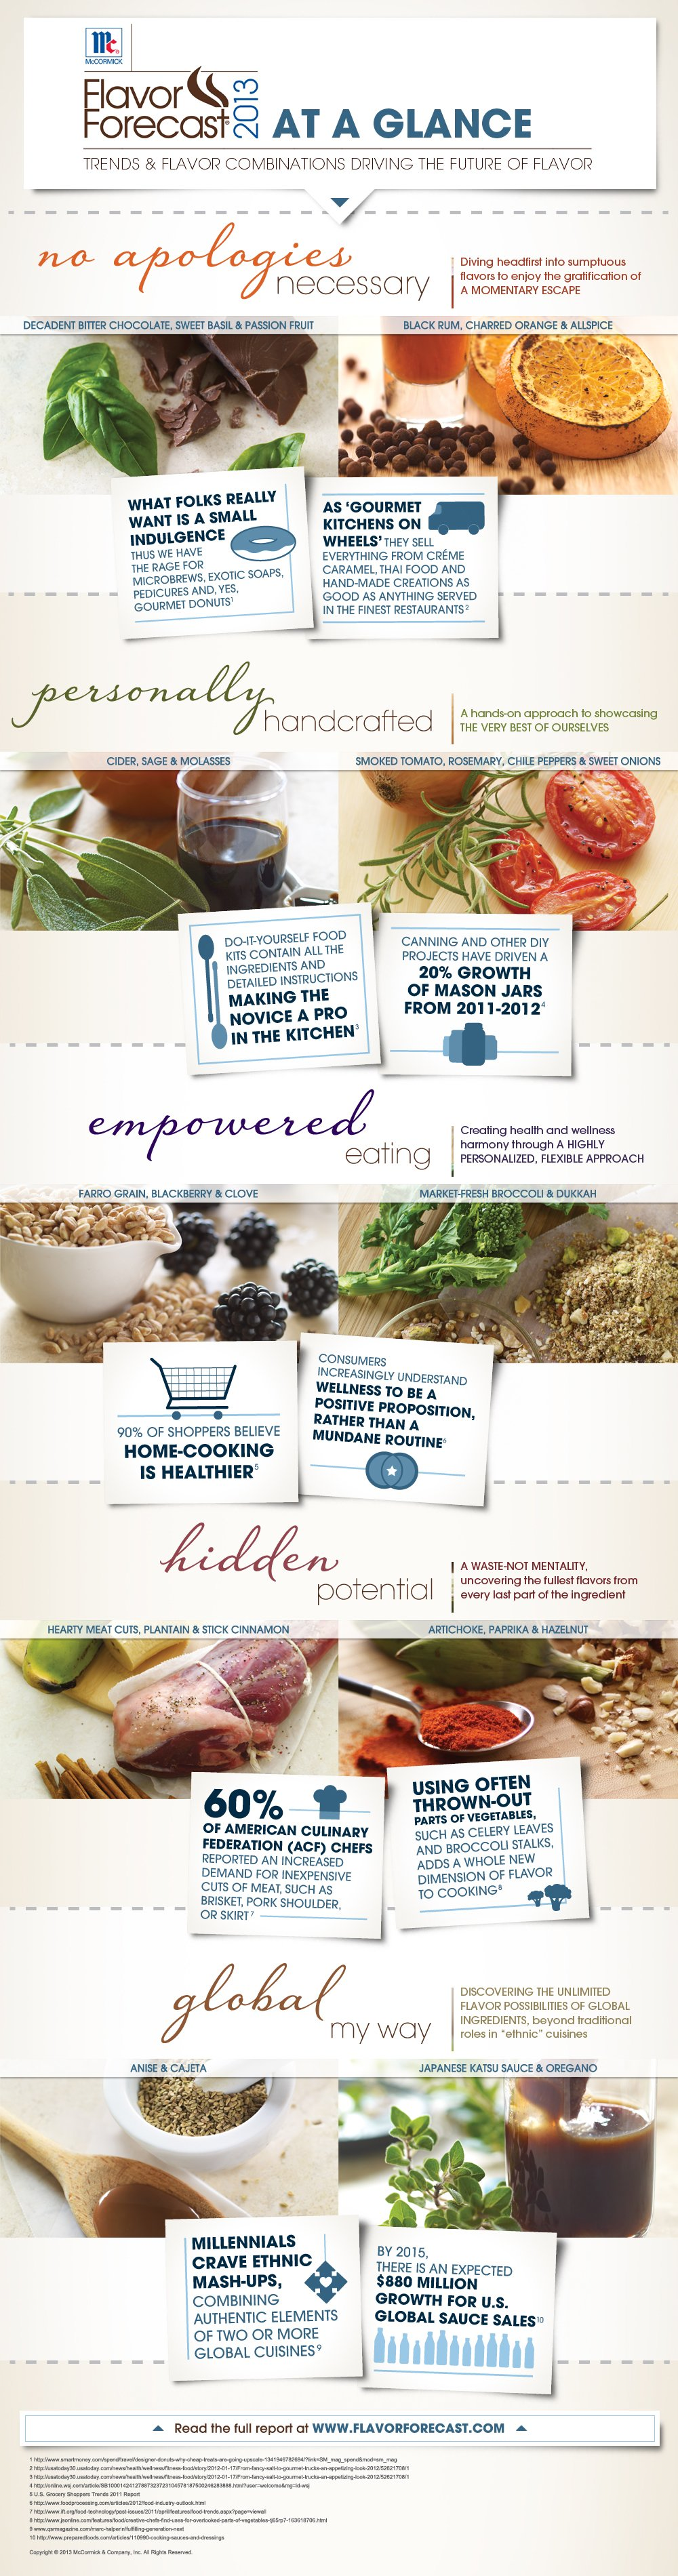 Flavor Forecast 2013 Infographic, McCormick